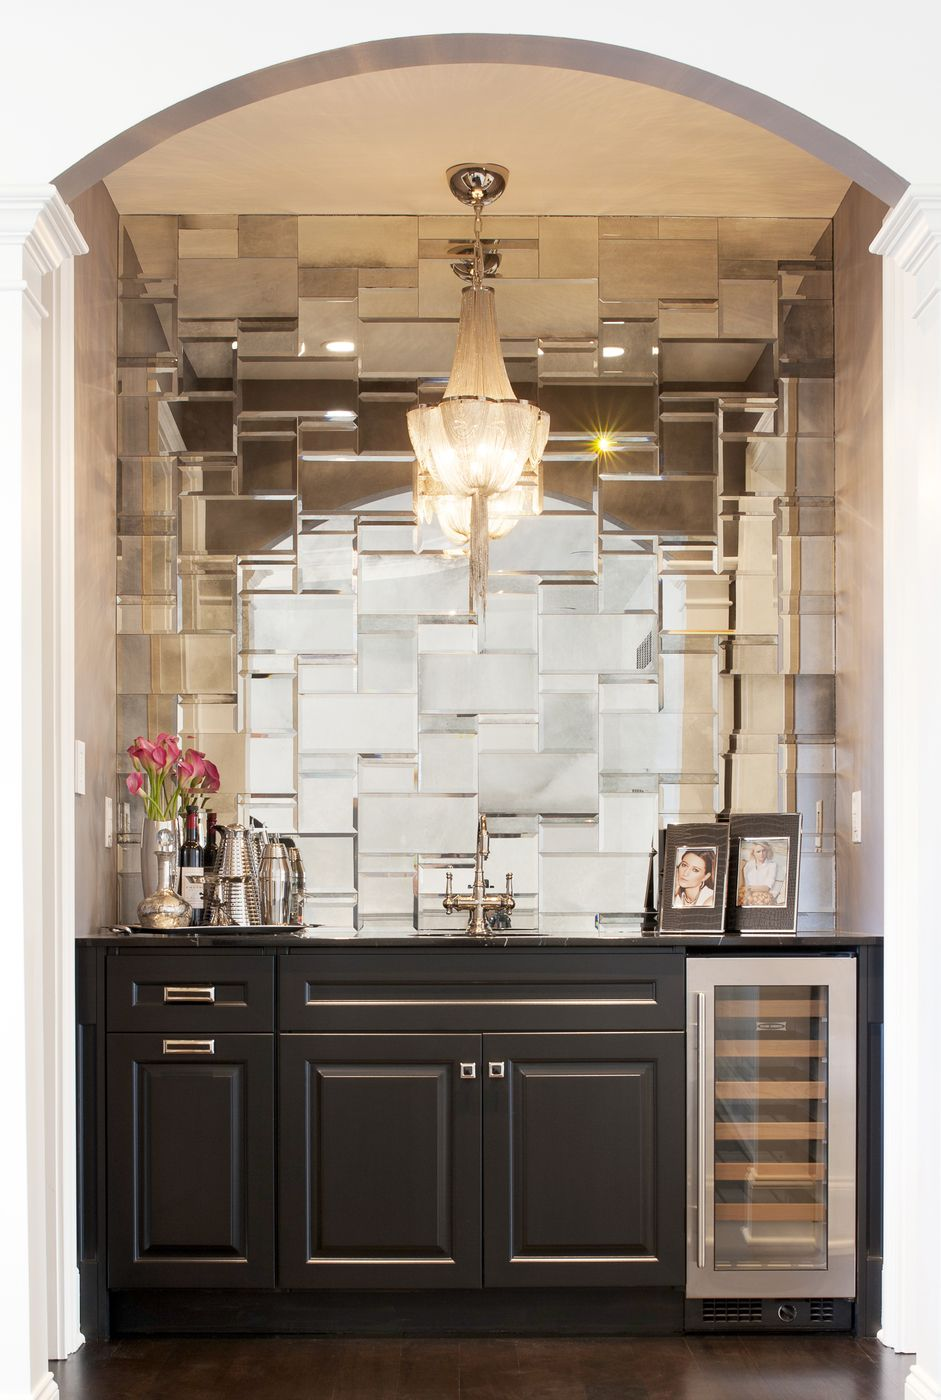 Explore wall ideas and be inspired with mirrored tile backsplash explore wall ideas and be inspired with mirrored tile backsplash groutless tile backsplash mirrored dailygadgetfo Images